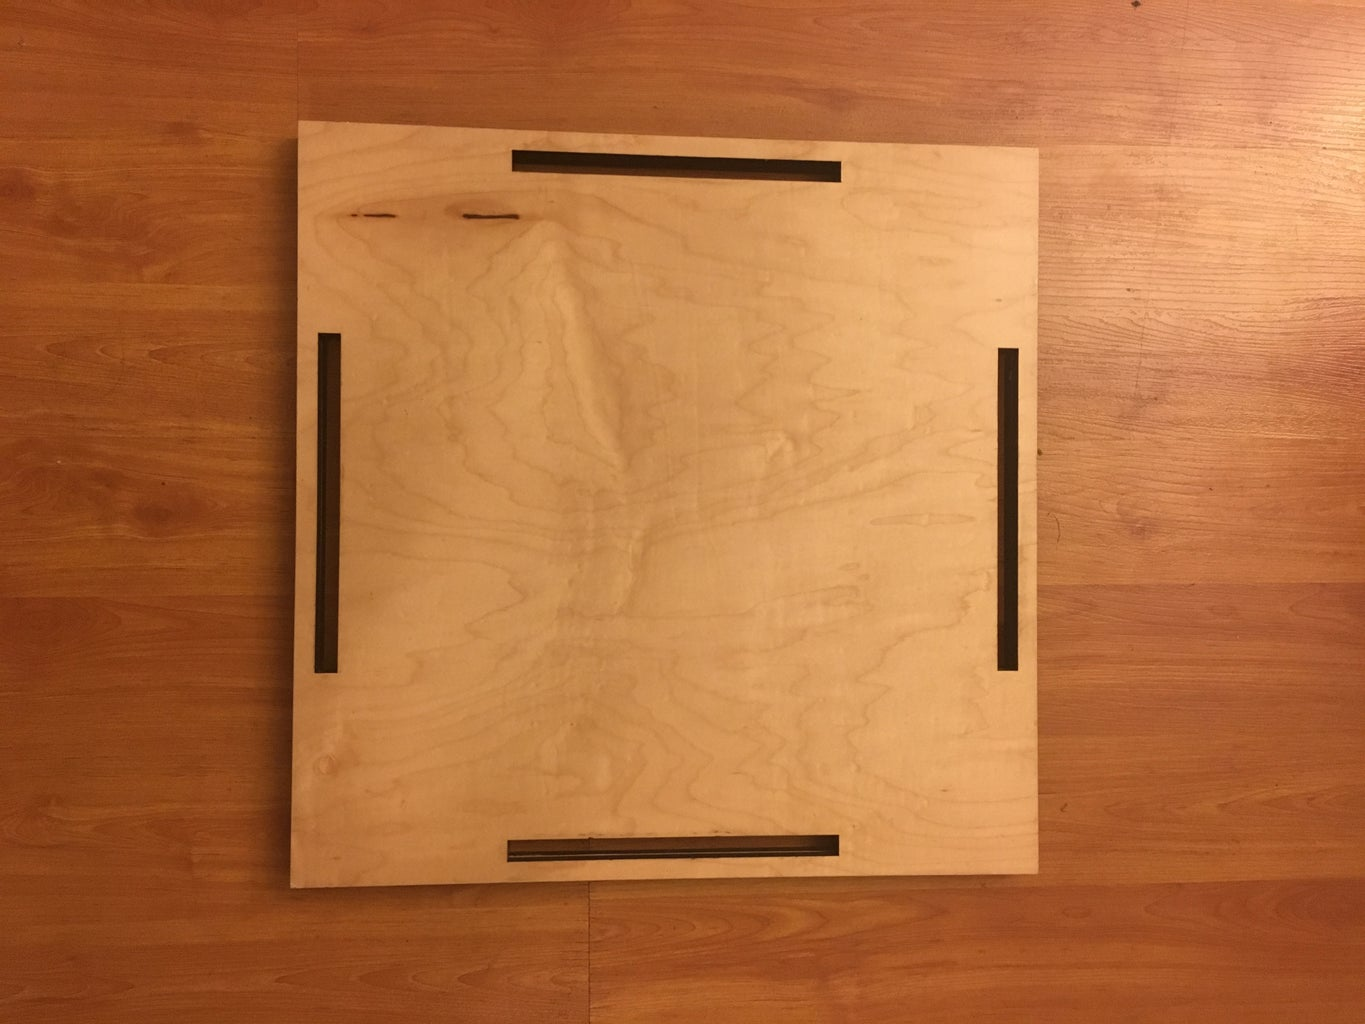 Gluing the Top + Bottom Pieces